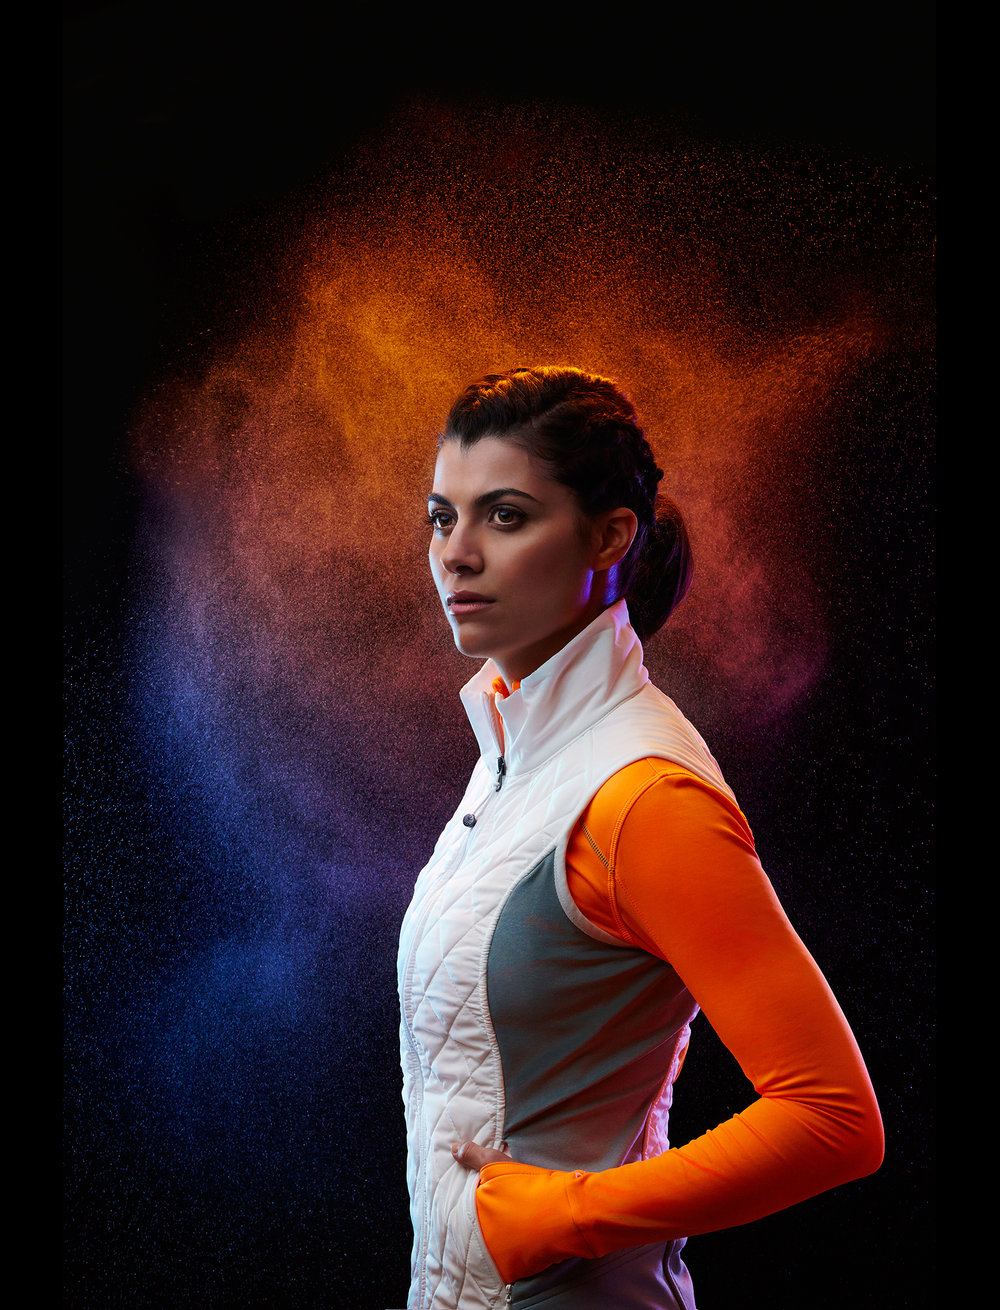 Nike-and-Reebok-Advertising-Photographer-Jonathan-R.-Beckerman-Model-Stephanie-Starface-New-York,-Boston-and-Connecticut-Sport-and-Fitness-Photography.jpg